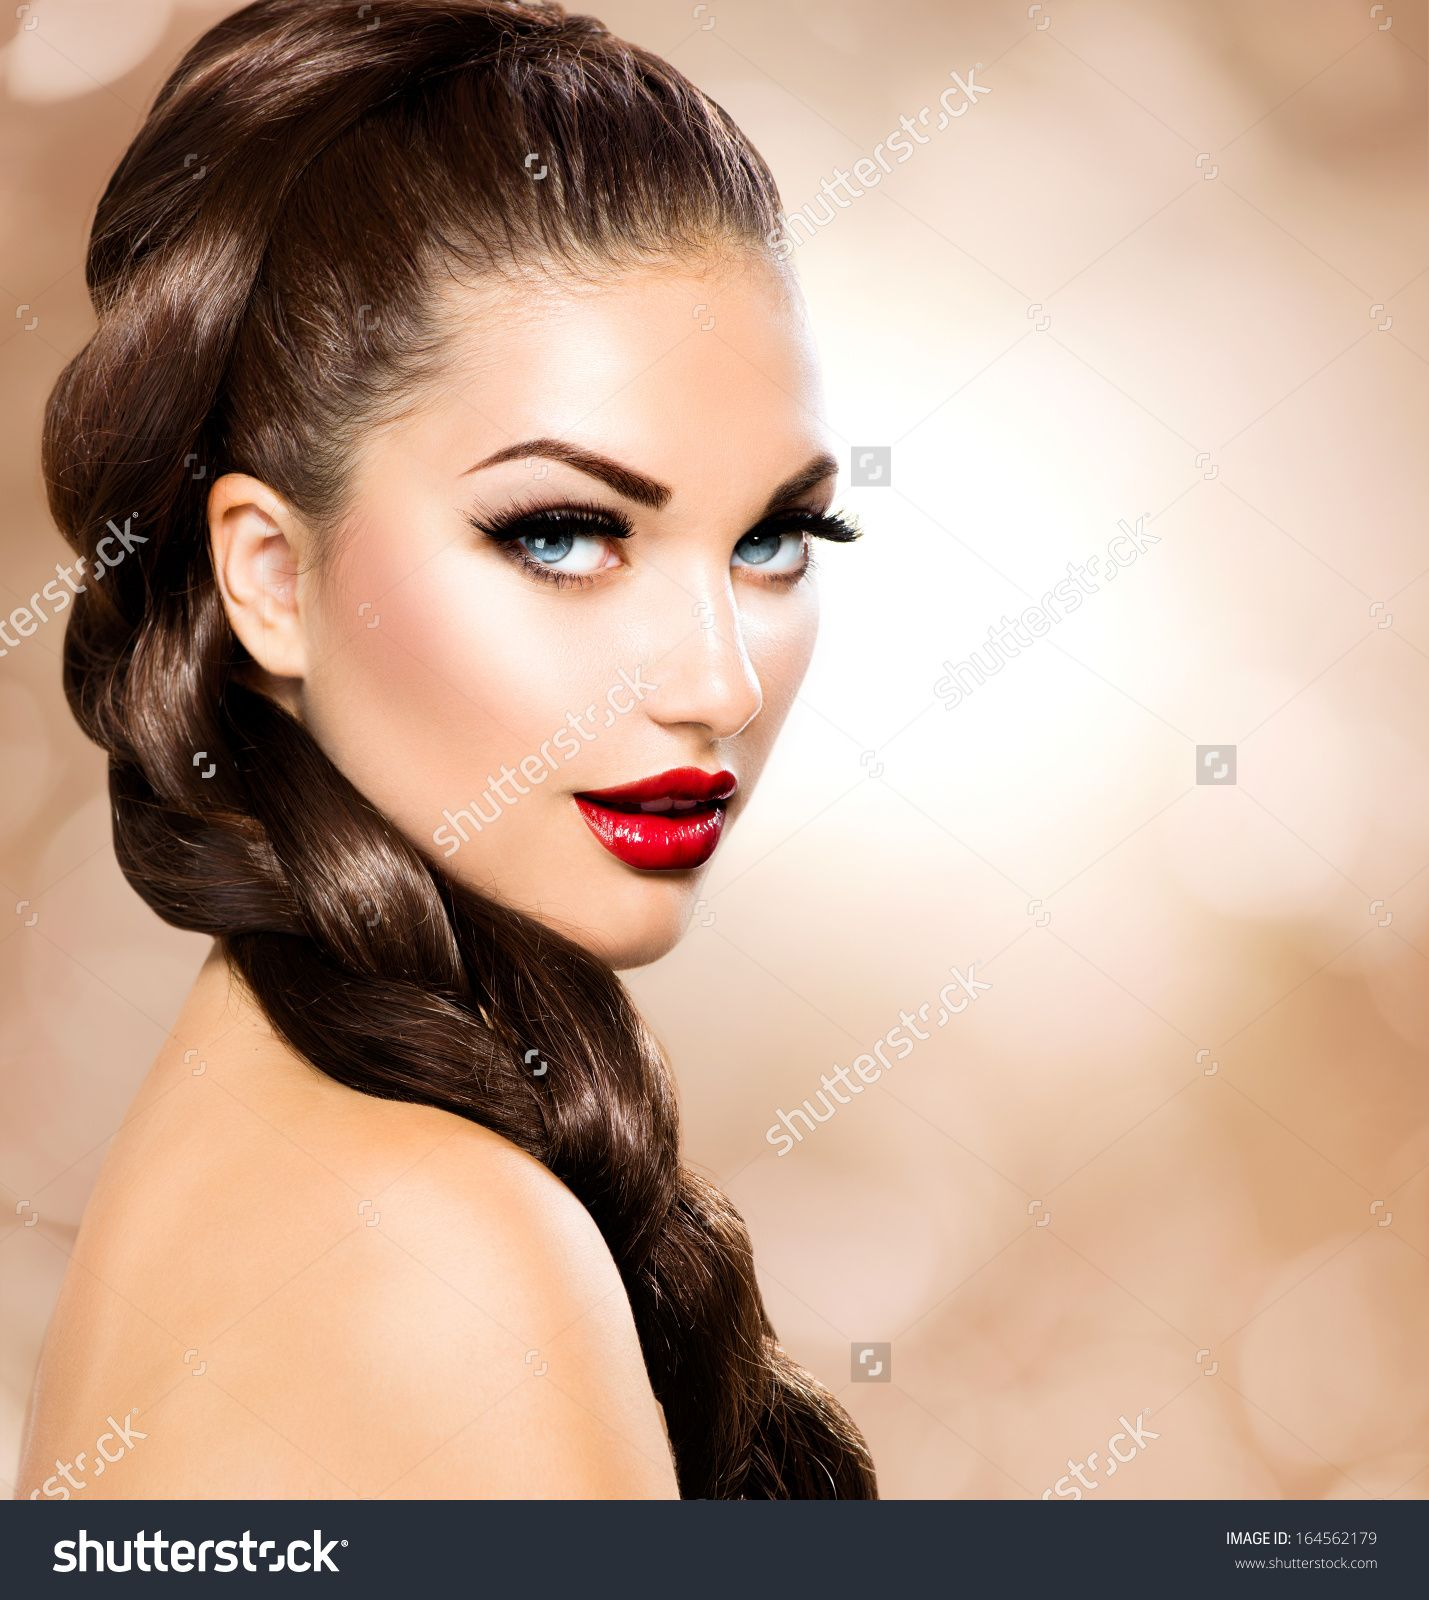 stock-photo-hair-braid-beautiful-woman-with-healthy-long-brown